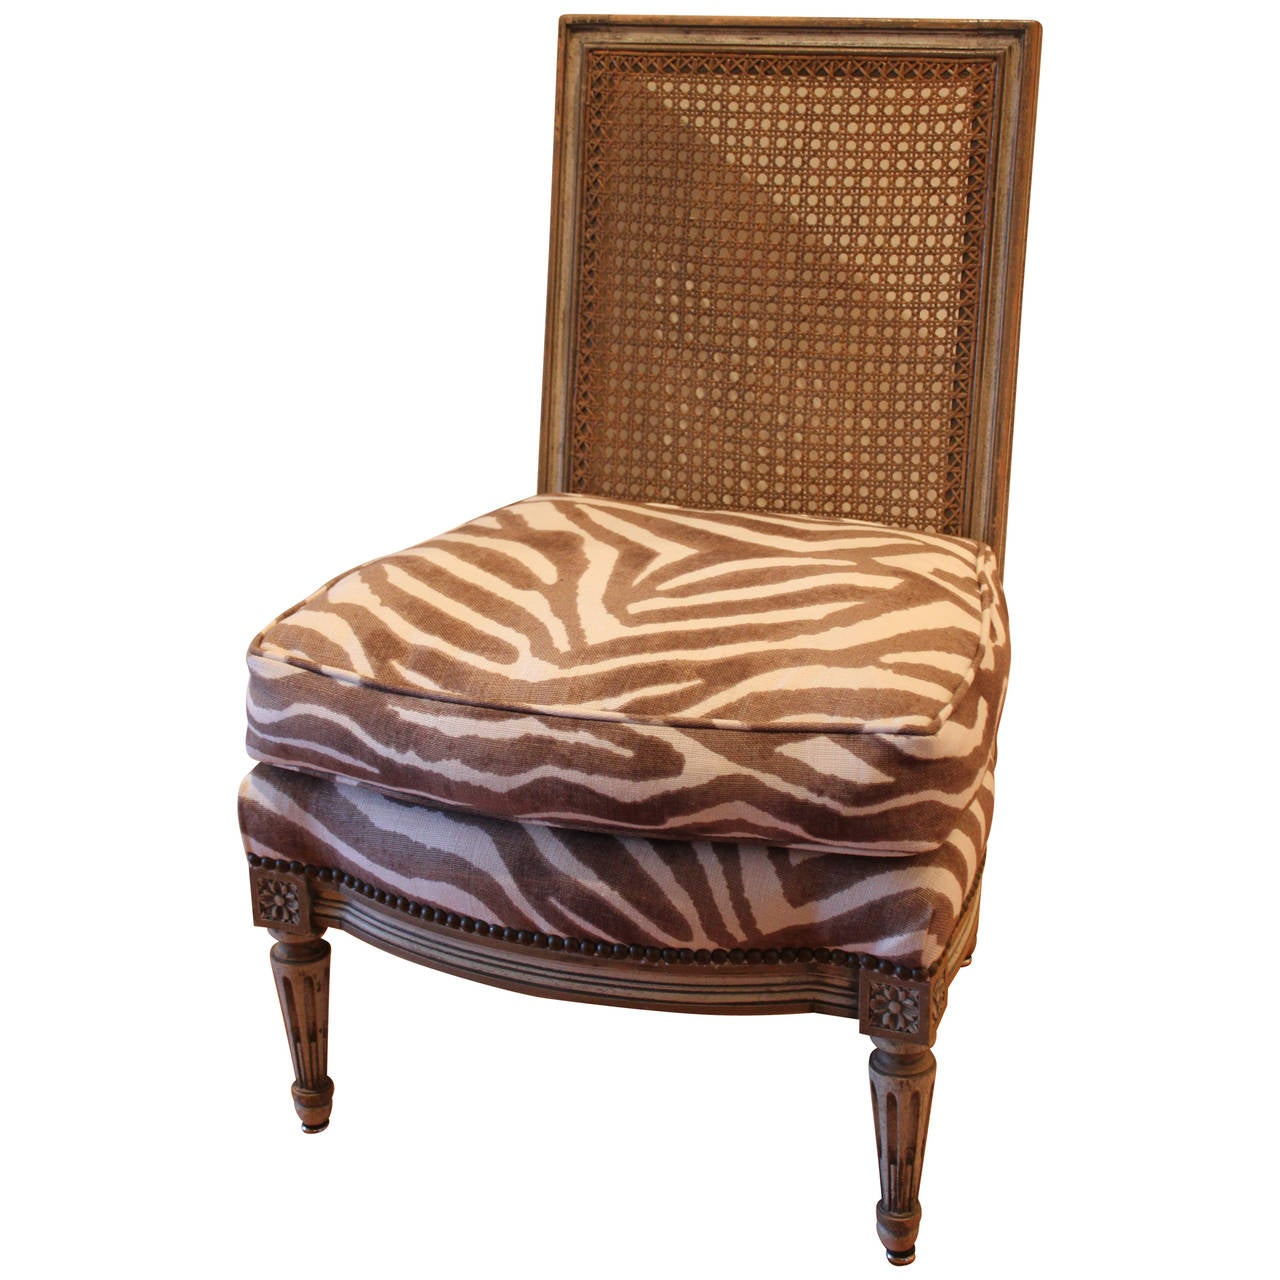 upholstered slipper chair barcelona uk louis xvi style caned back with